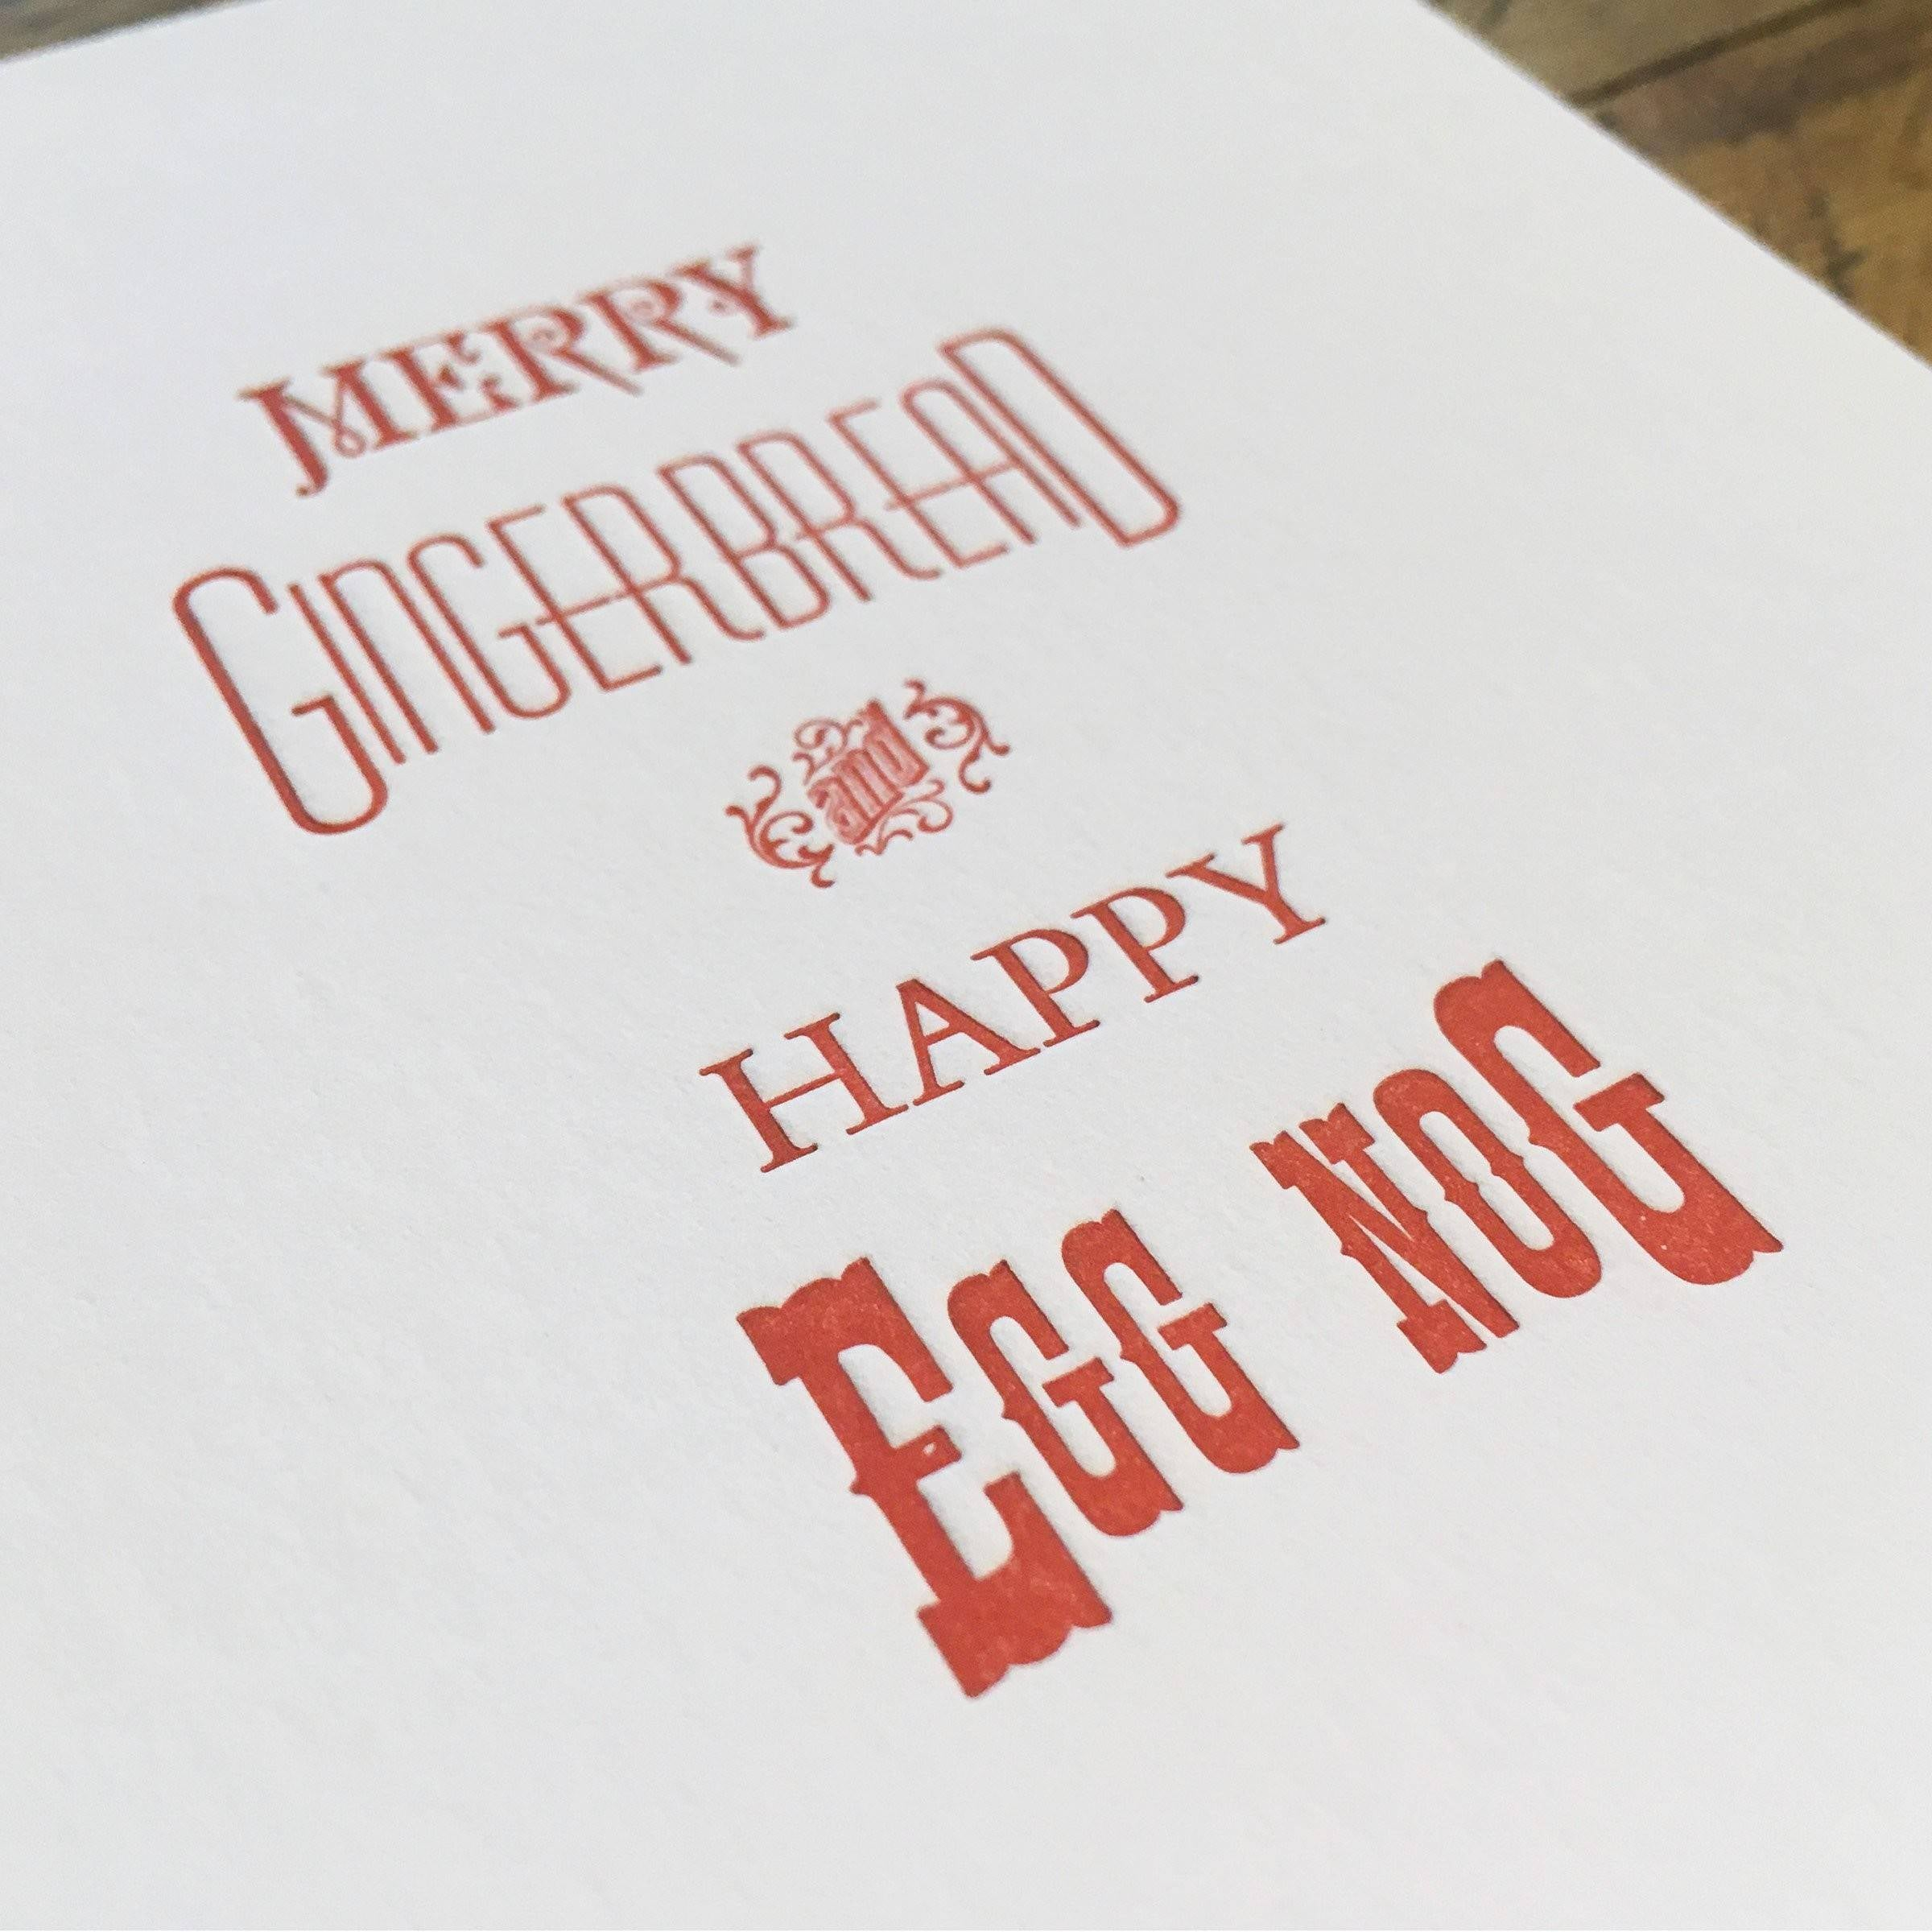 Merry Gingerbread and Happy Egg Nog Holiday Letterpress Cards